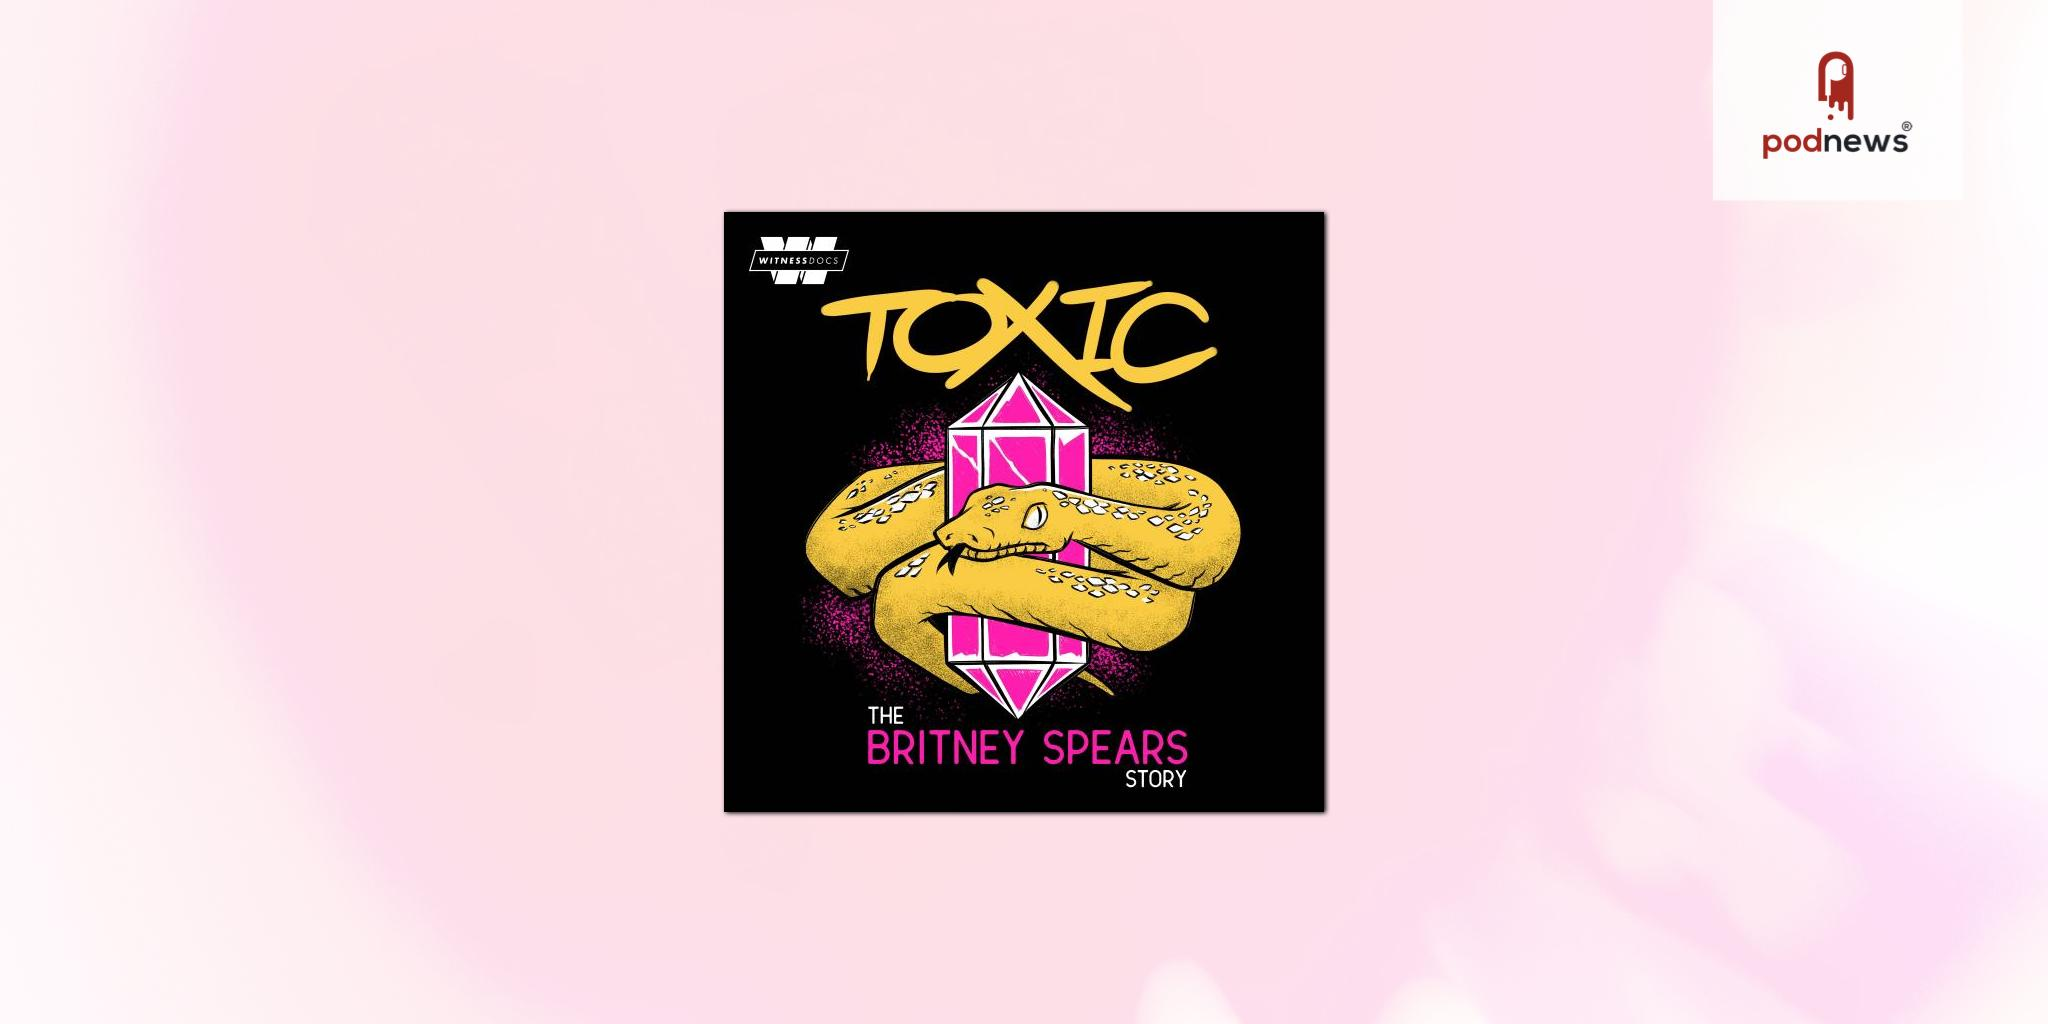 Witness Docs announces July 7 release for new investigative podcast Toxic: The Britney Spears Story